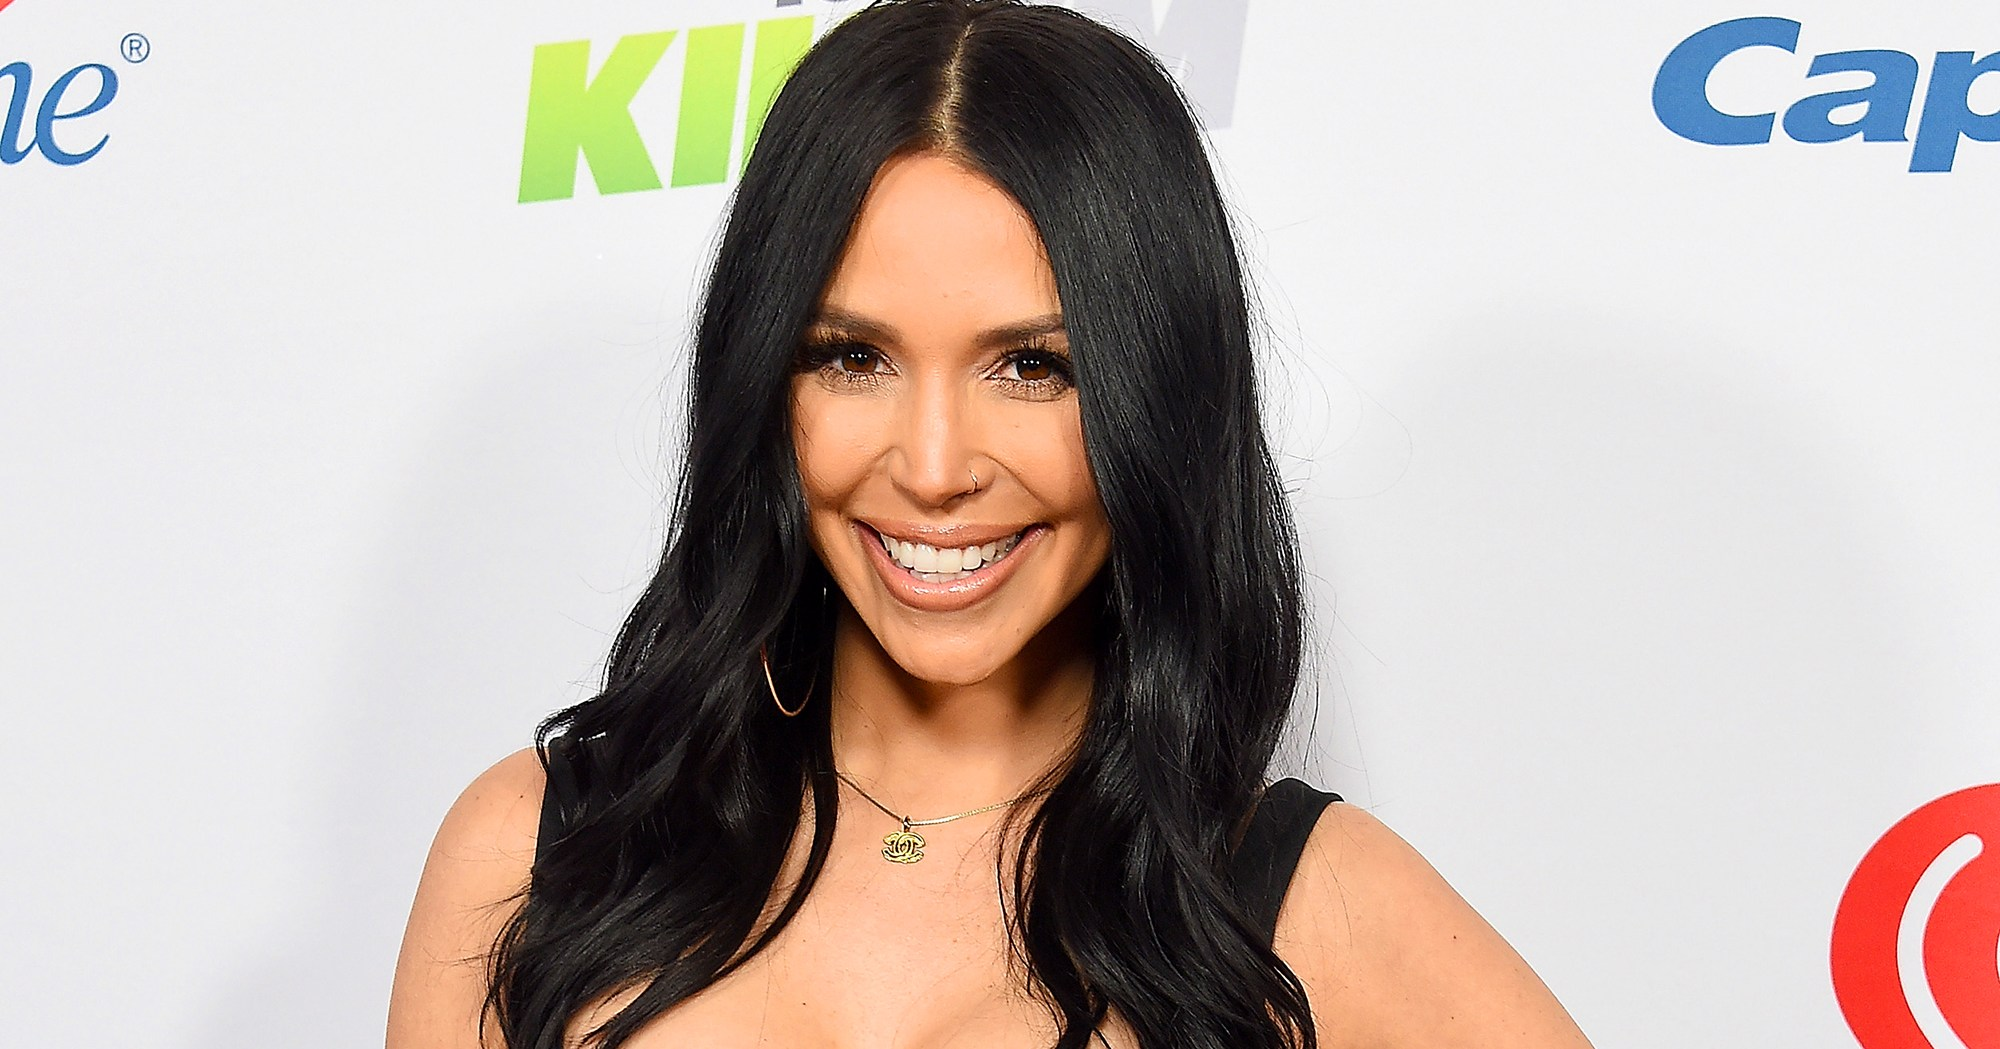 'Vanderpump Rules' Star Scheana Shay Is 'in the Process' of Freezing Her Eggs: 'I'm Terrified'